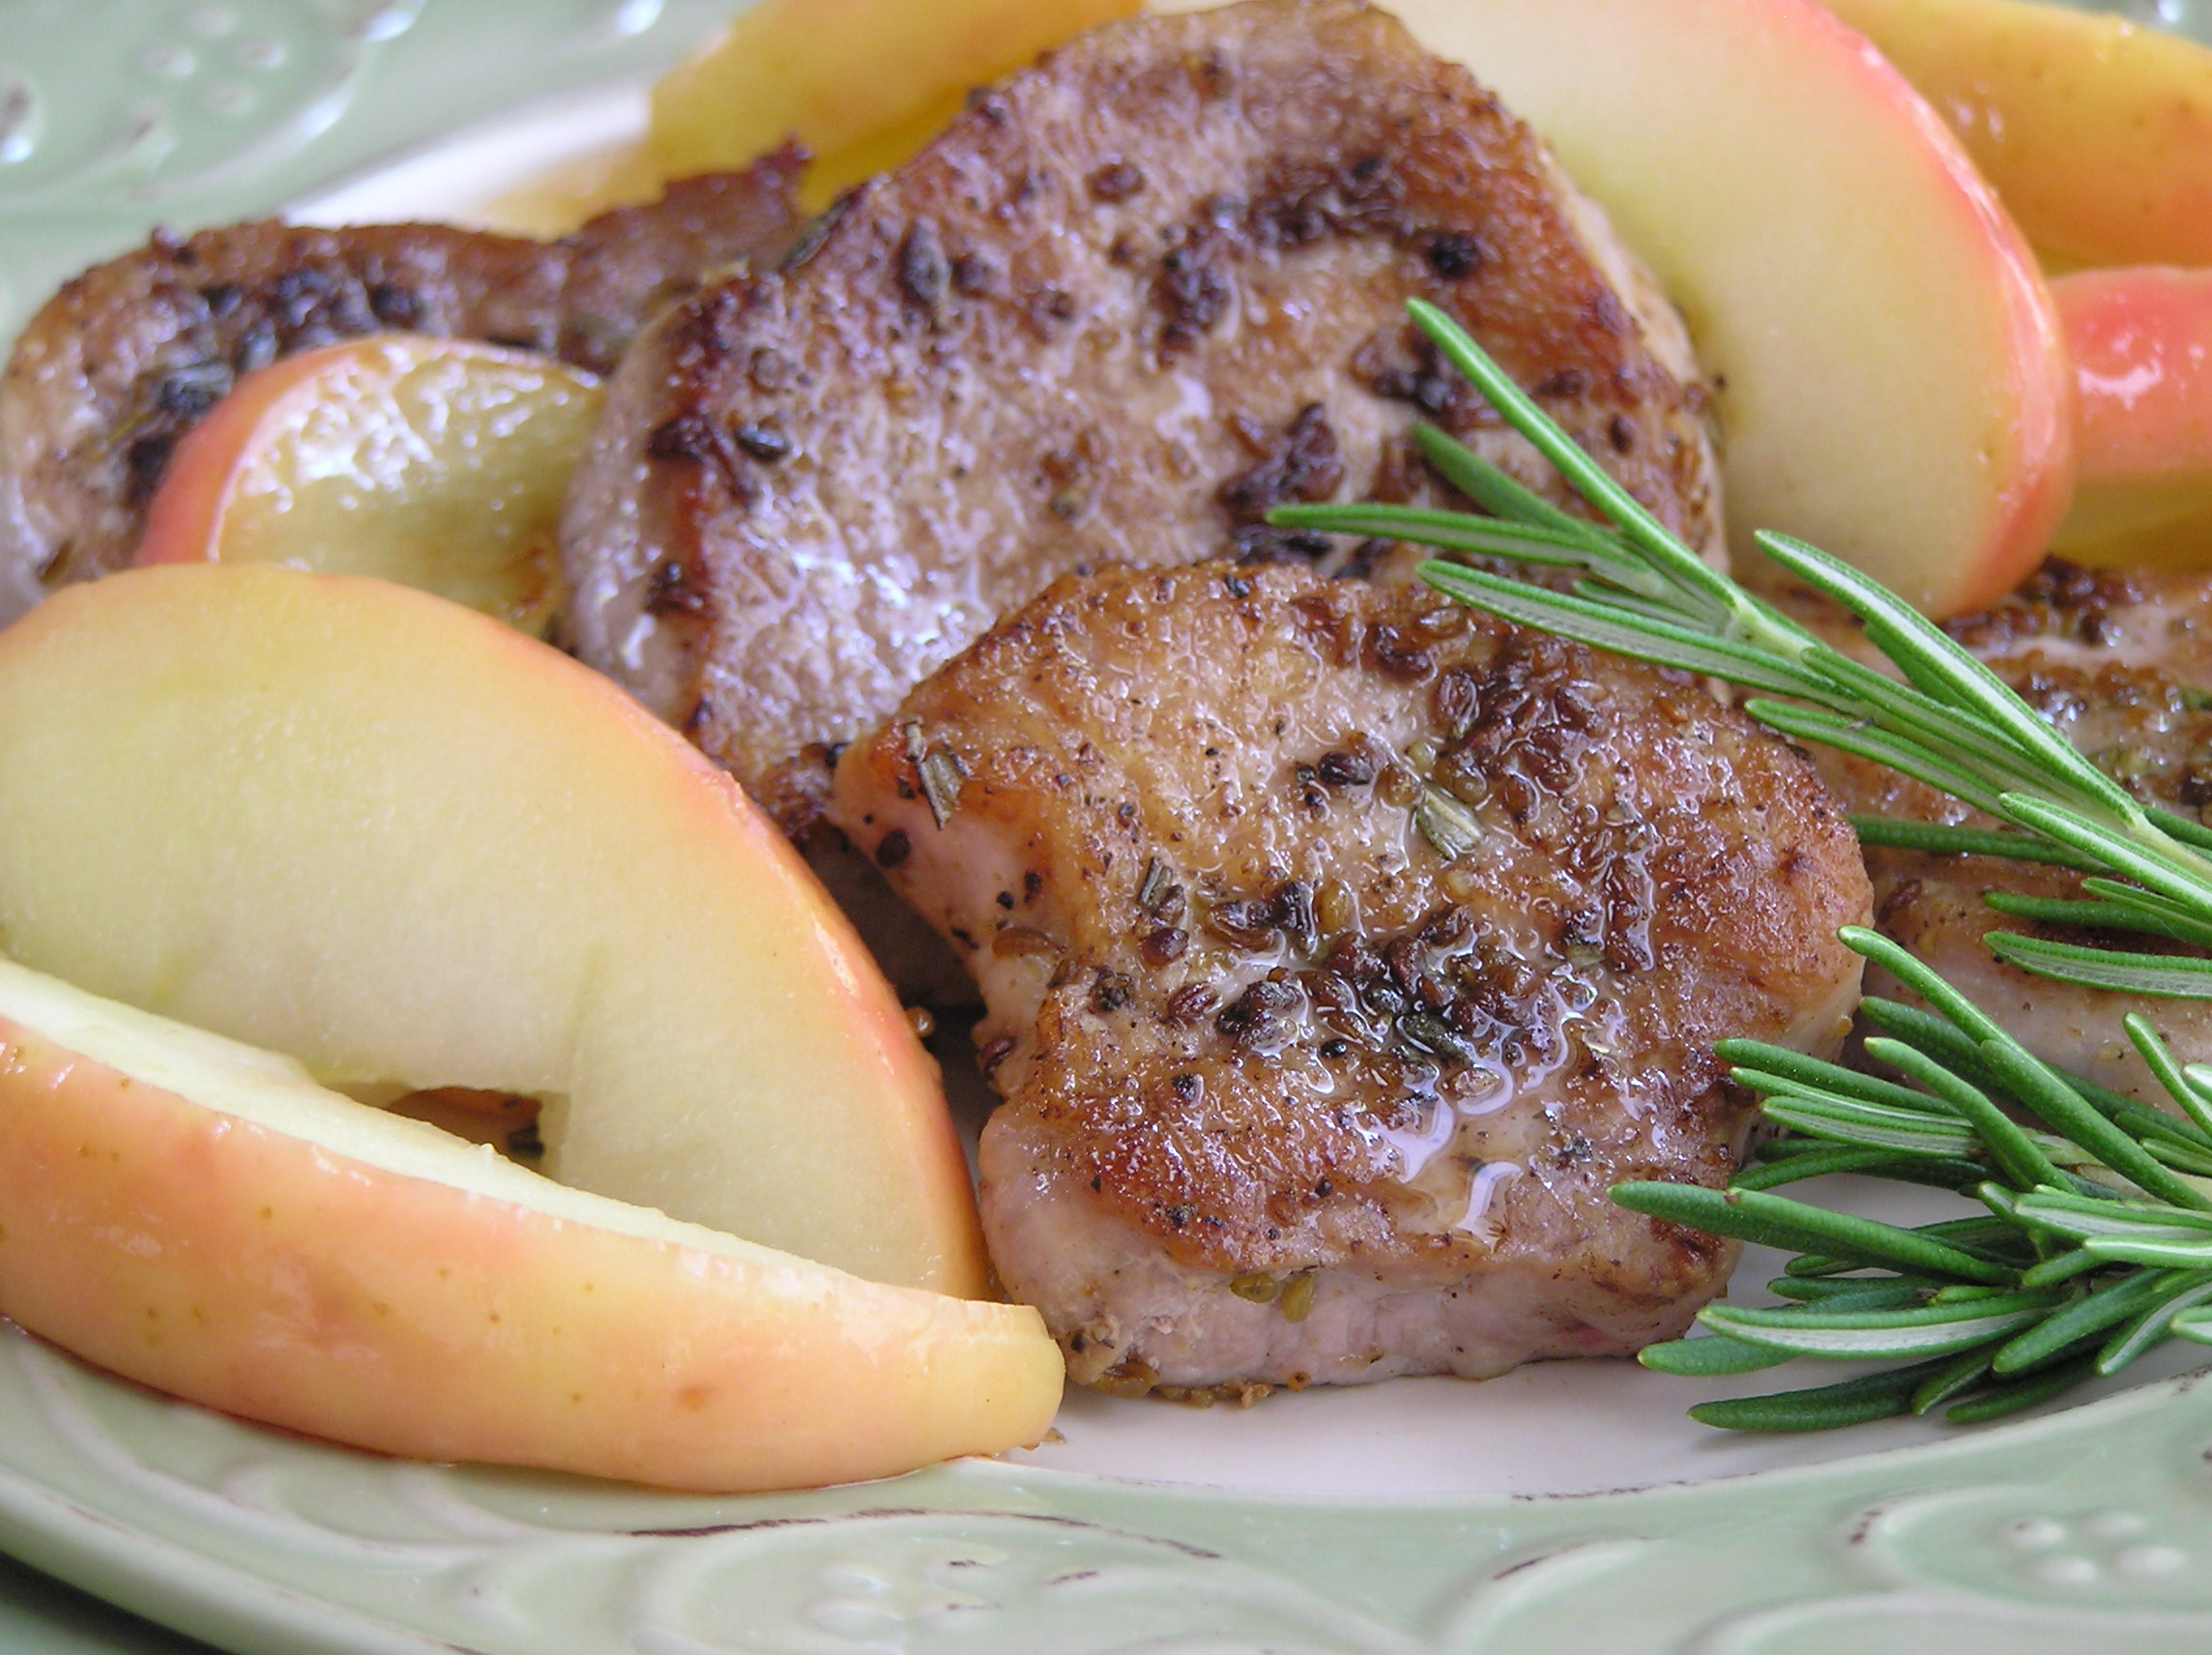 Fennel-Crusted Pork with Apples